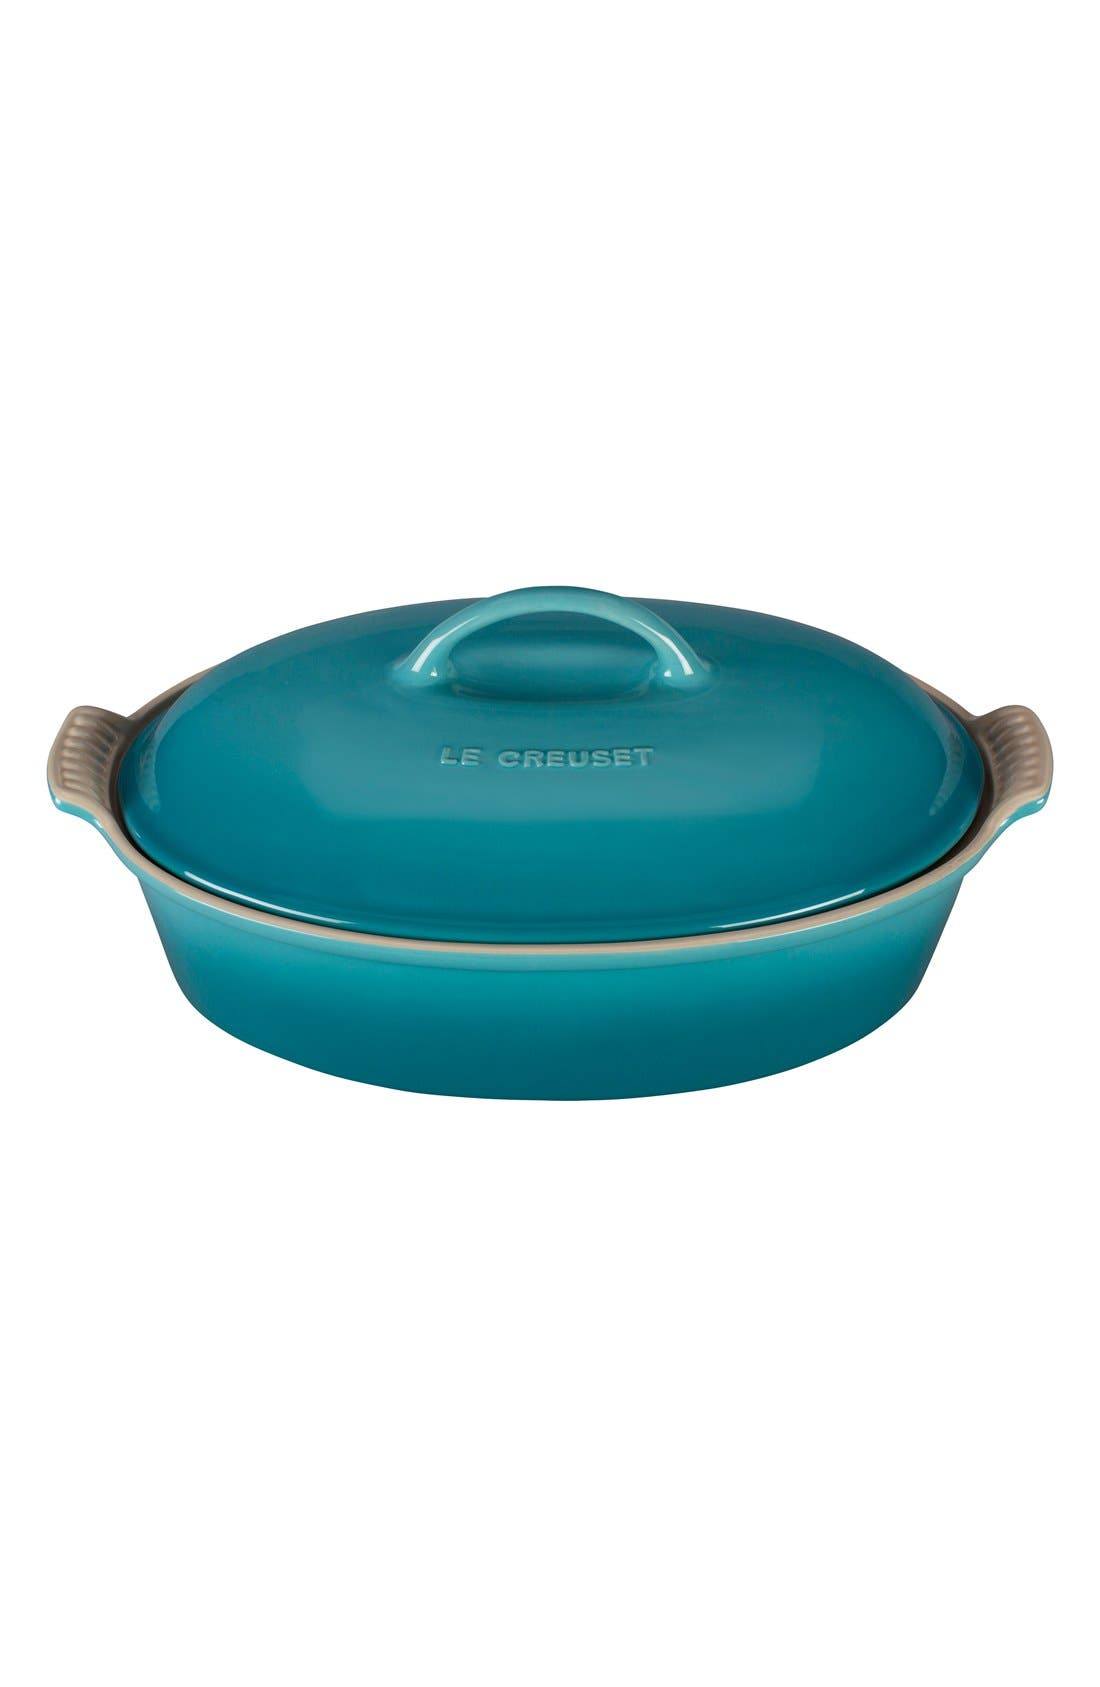 Le Creuset 4 Quart Covered Oval Stoneware Casserole